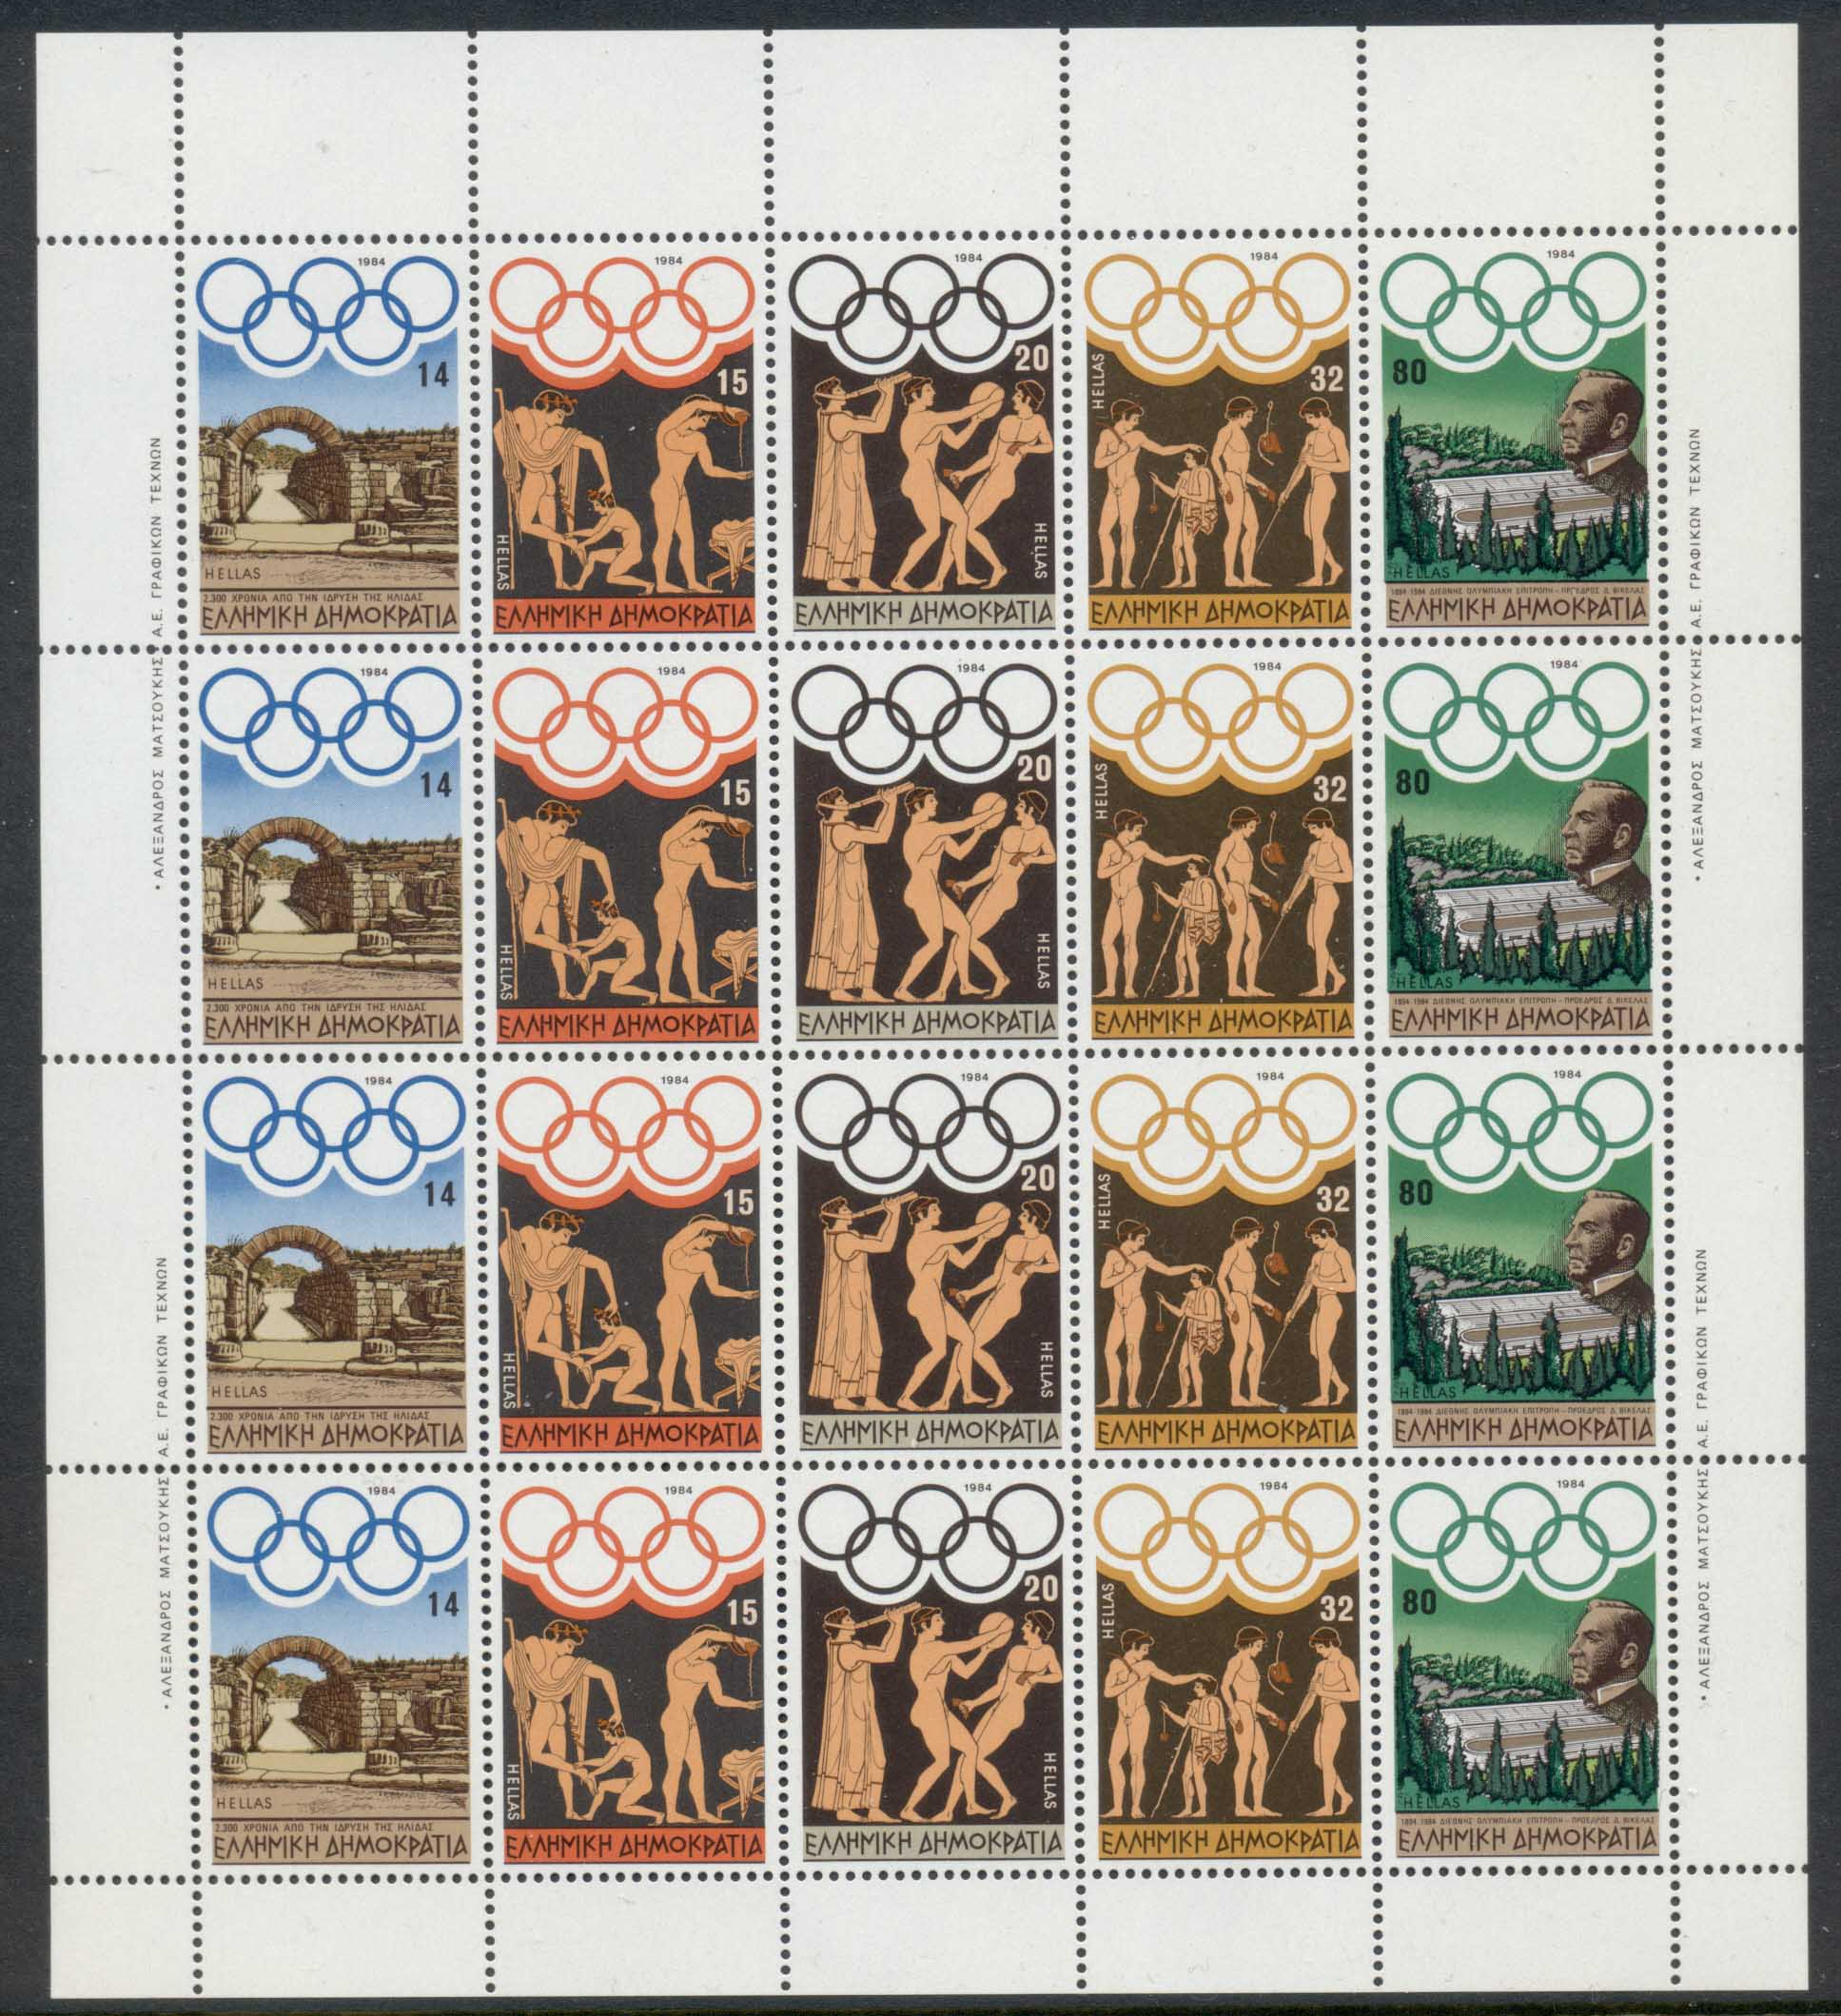 Greece 1984 Summer Olympics sheet MUH